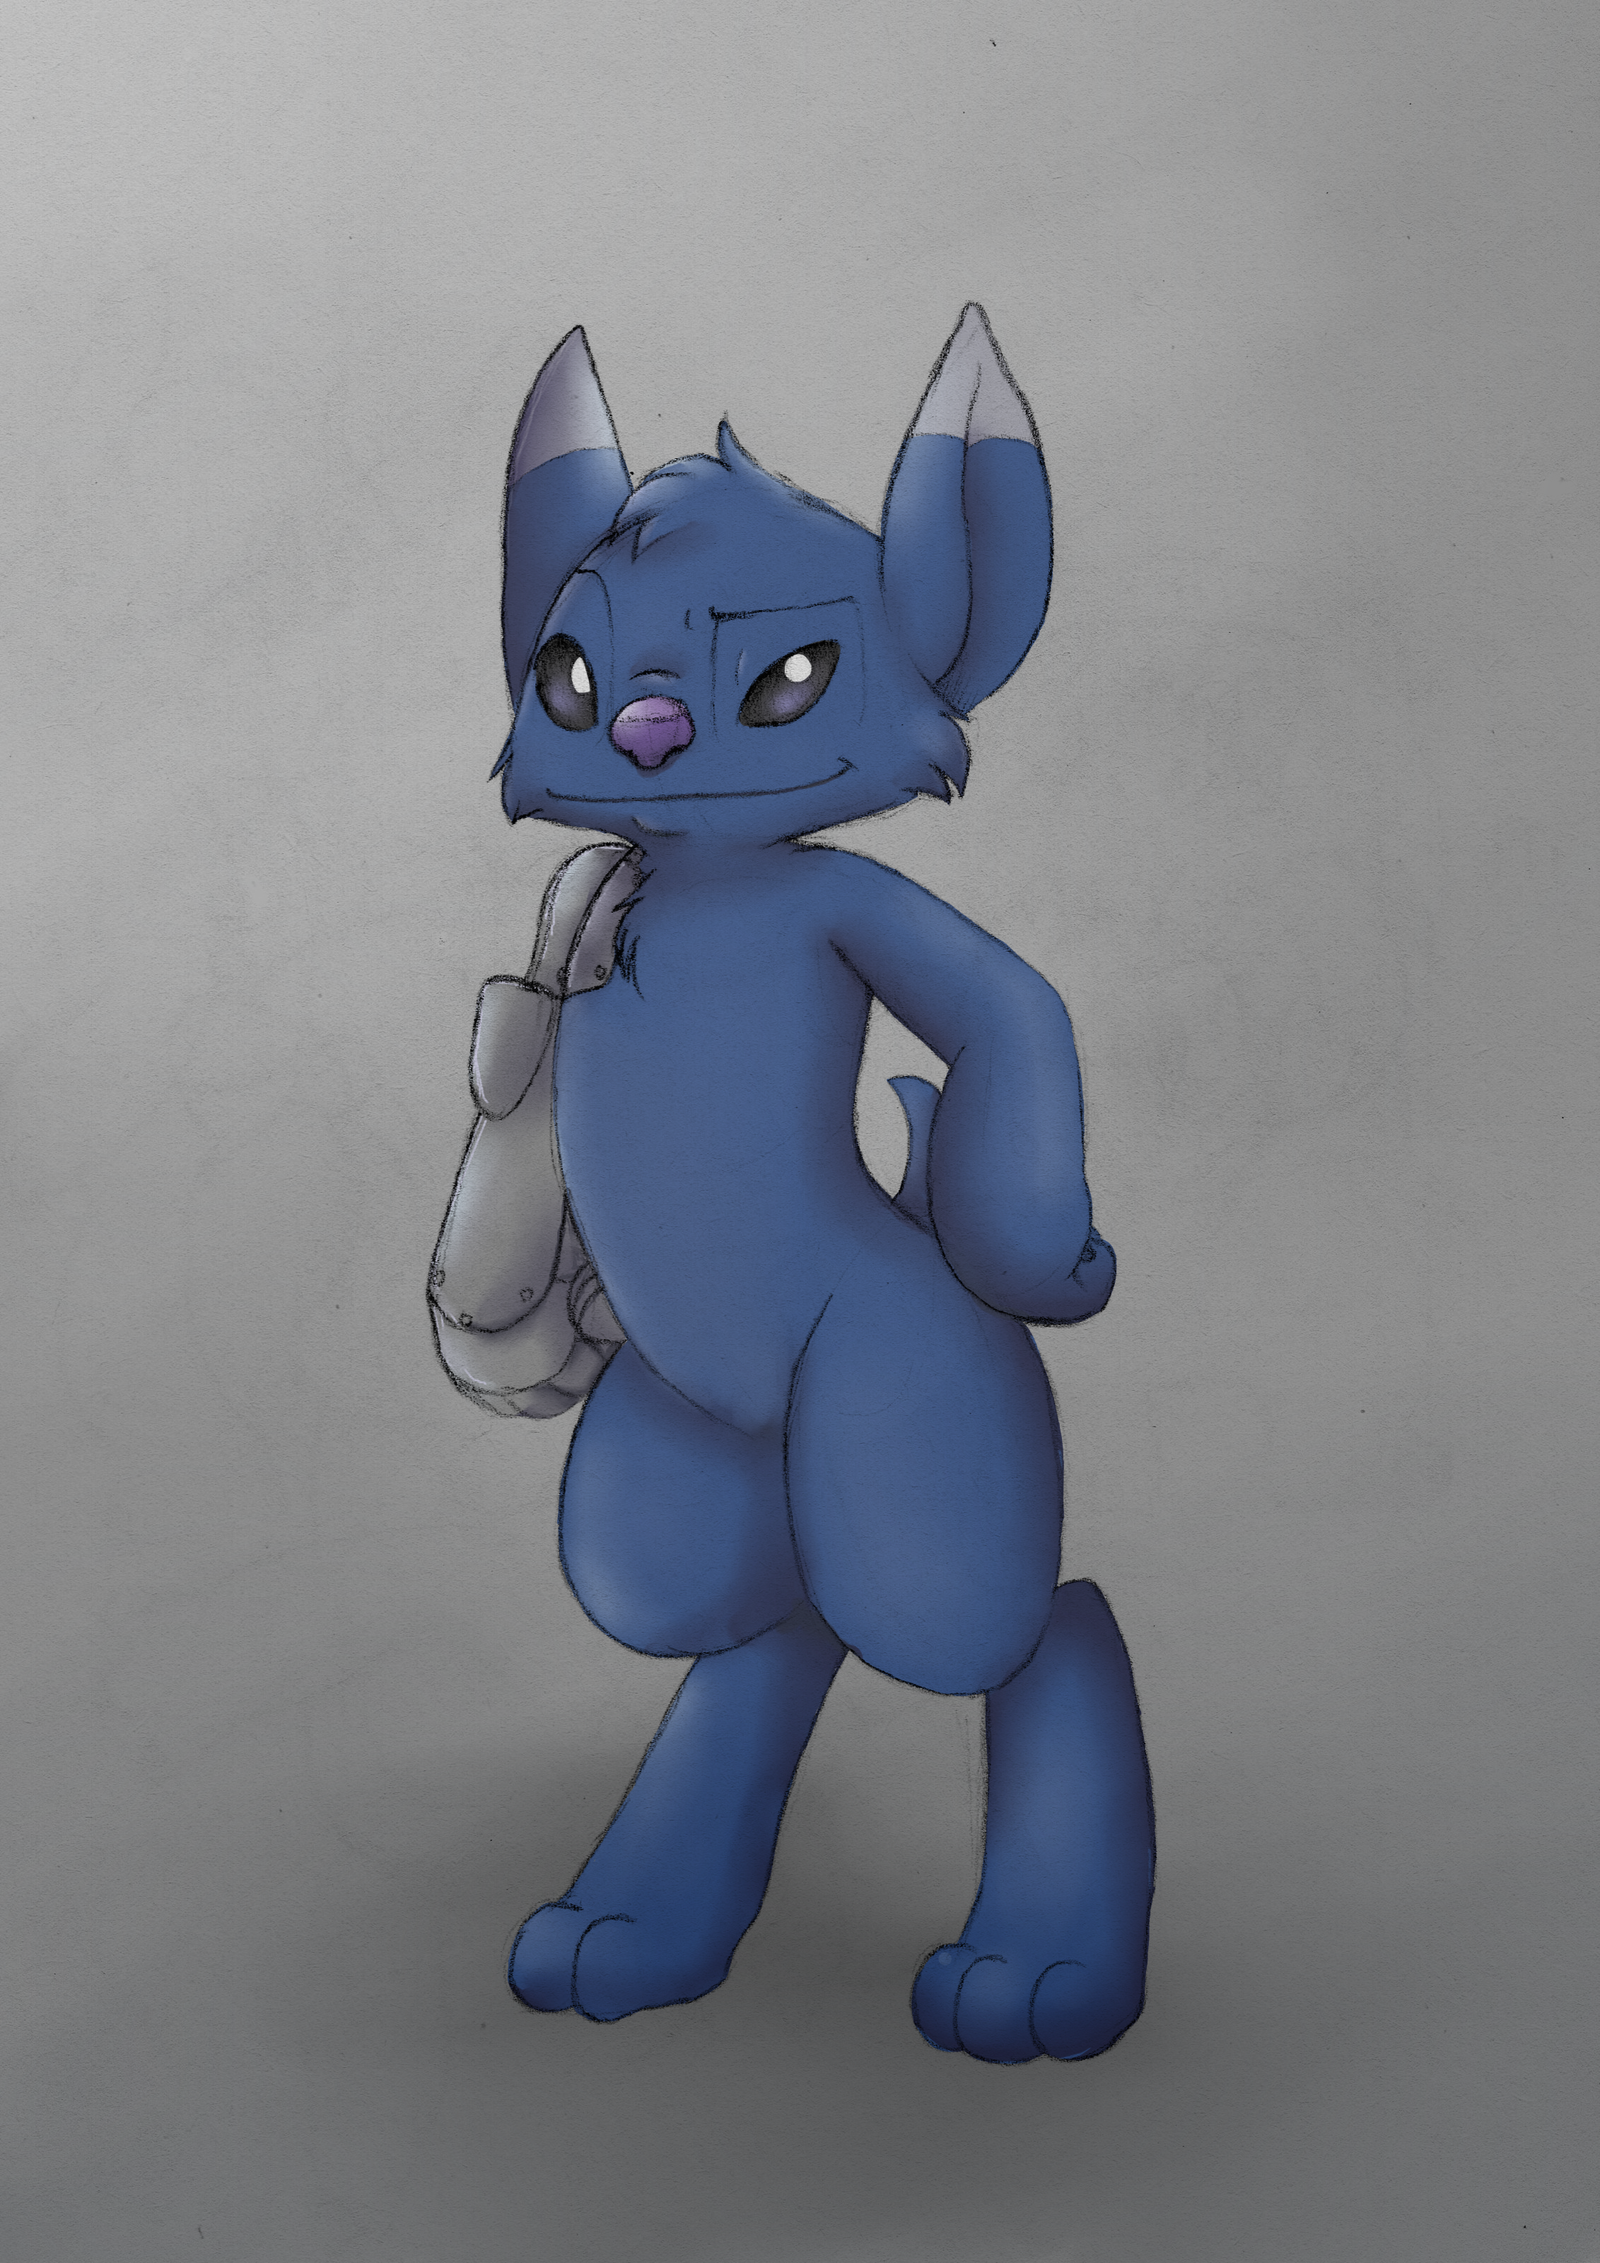 e926 2016 3_toes alien black_eyes blue_fur cheek_tuft chest_tuft cybernetic_arm digital_media_(artwork) dipstick_ears disney experiment_(species) fan_character fur head_tuft hi_res jack_(veggiebad) lilo_and_stitch mixed_media pencil_(artwork) purple_nose raised_eyebrow short_tail simple_background smile solo solosandwich standing toes traditional_media_(artwork) tuft white_pupils